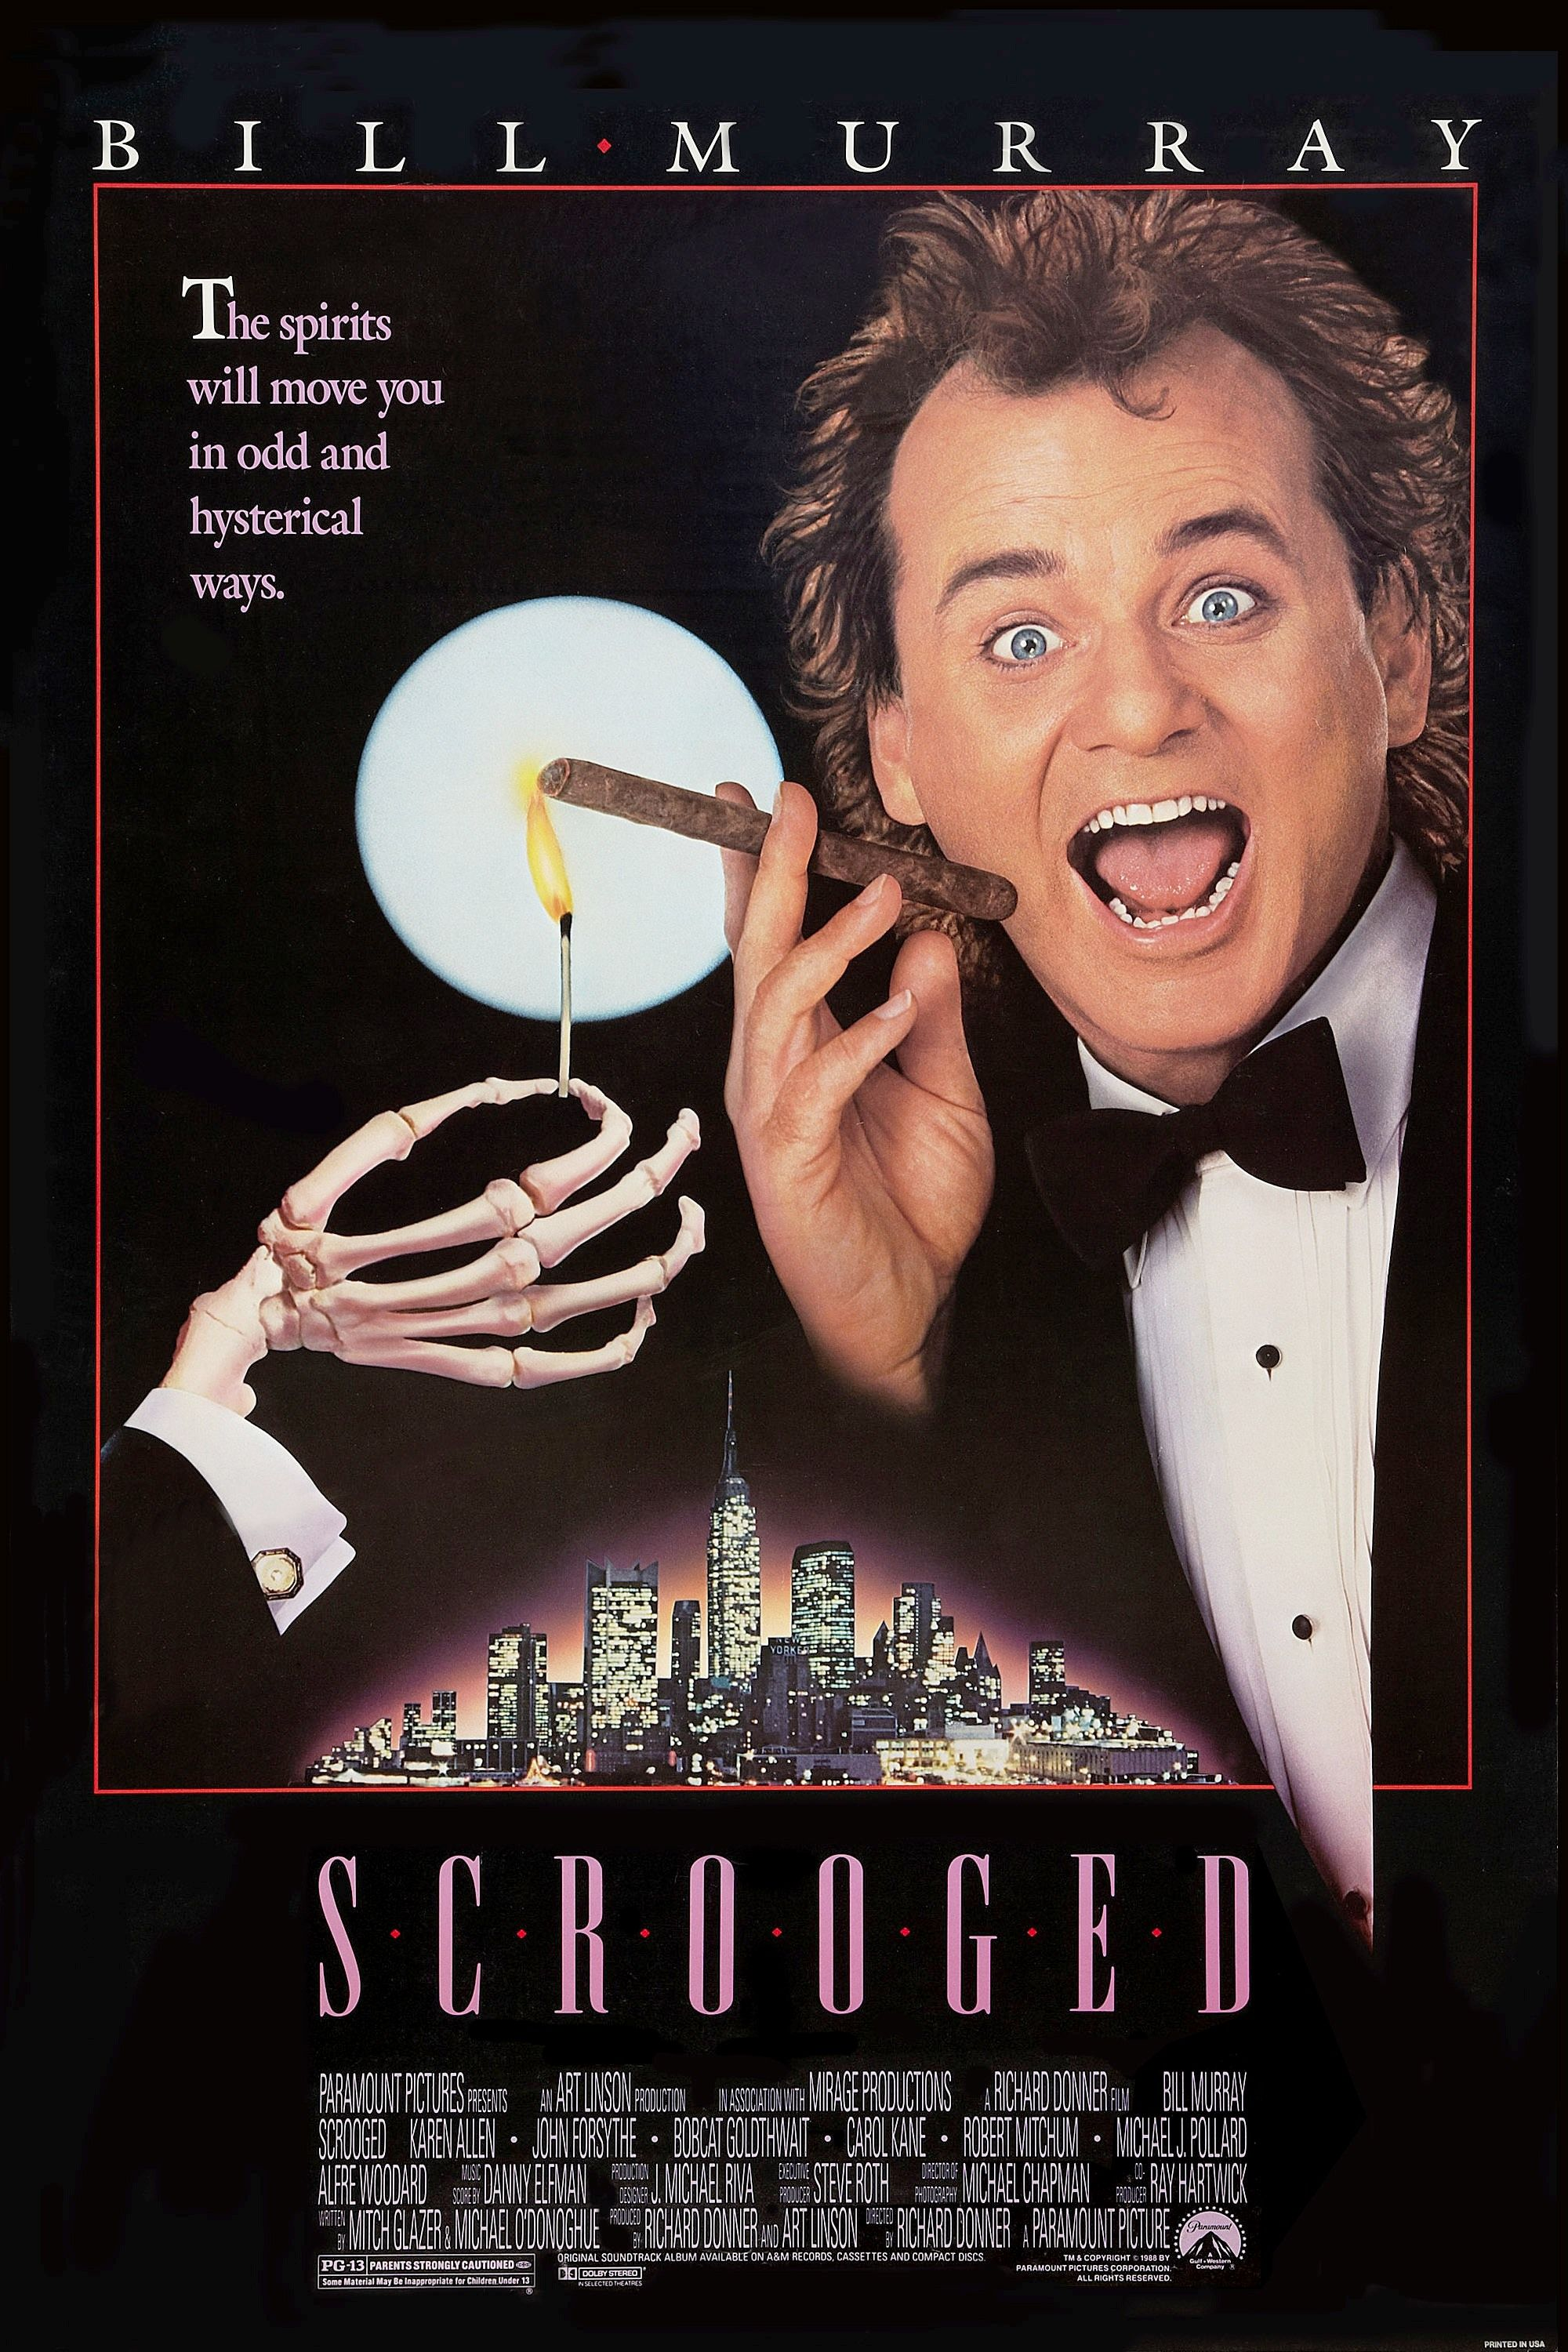 Scrooged Movie Poster 1988 Christmas Movies Best Christmas Movies Great Christmas Movies